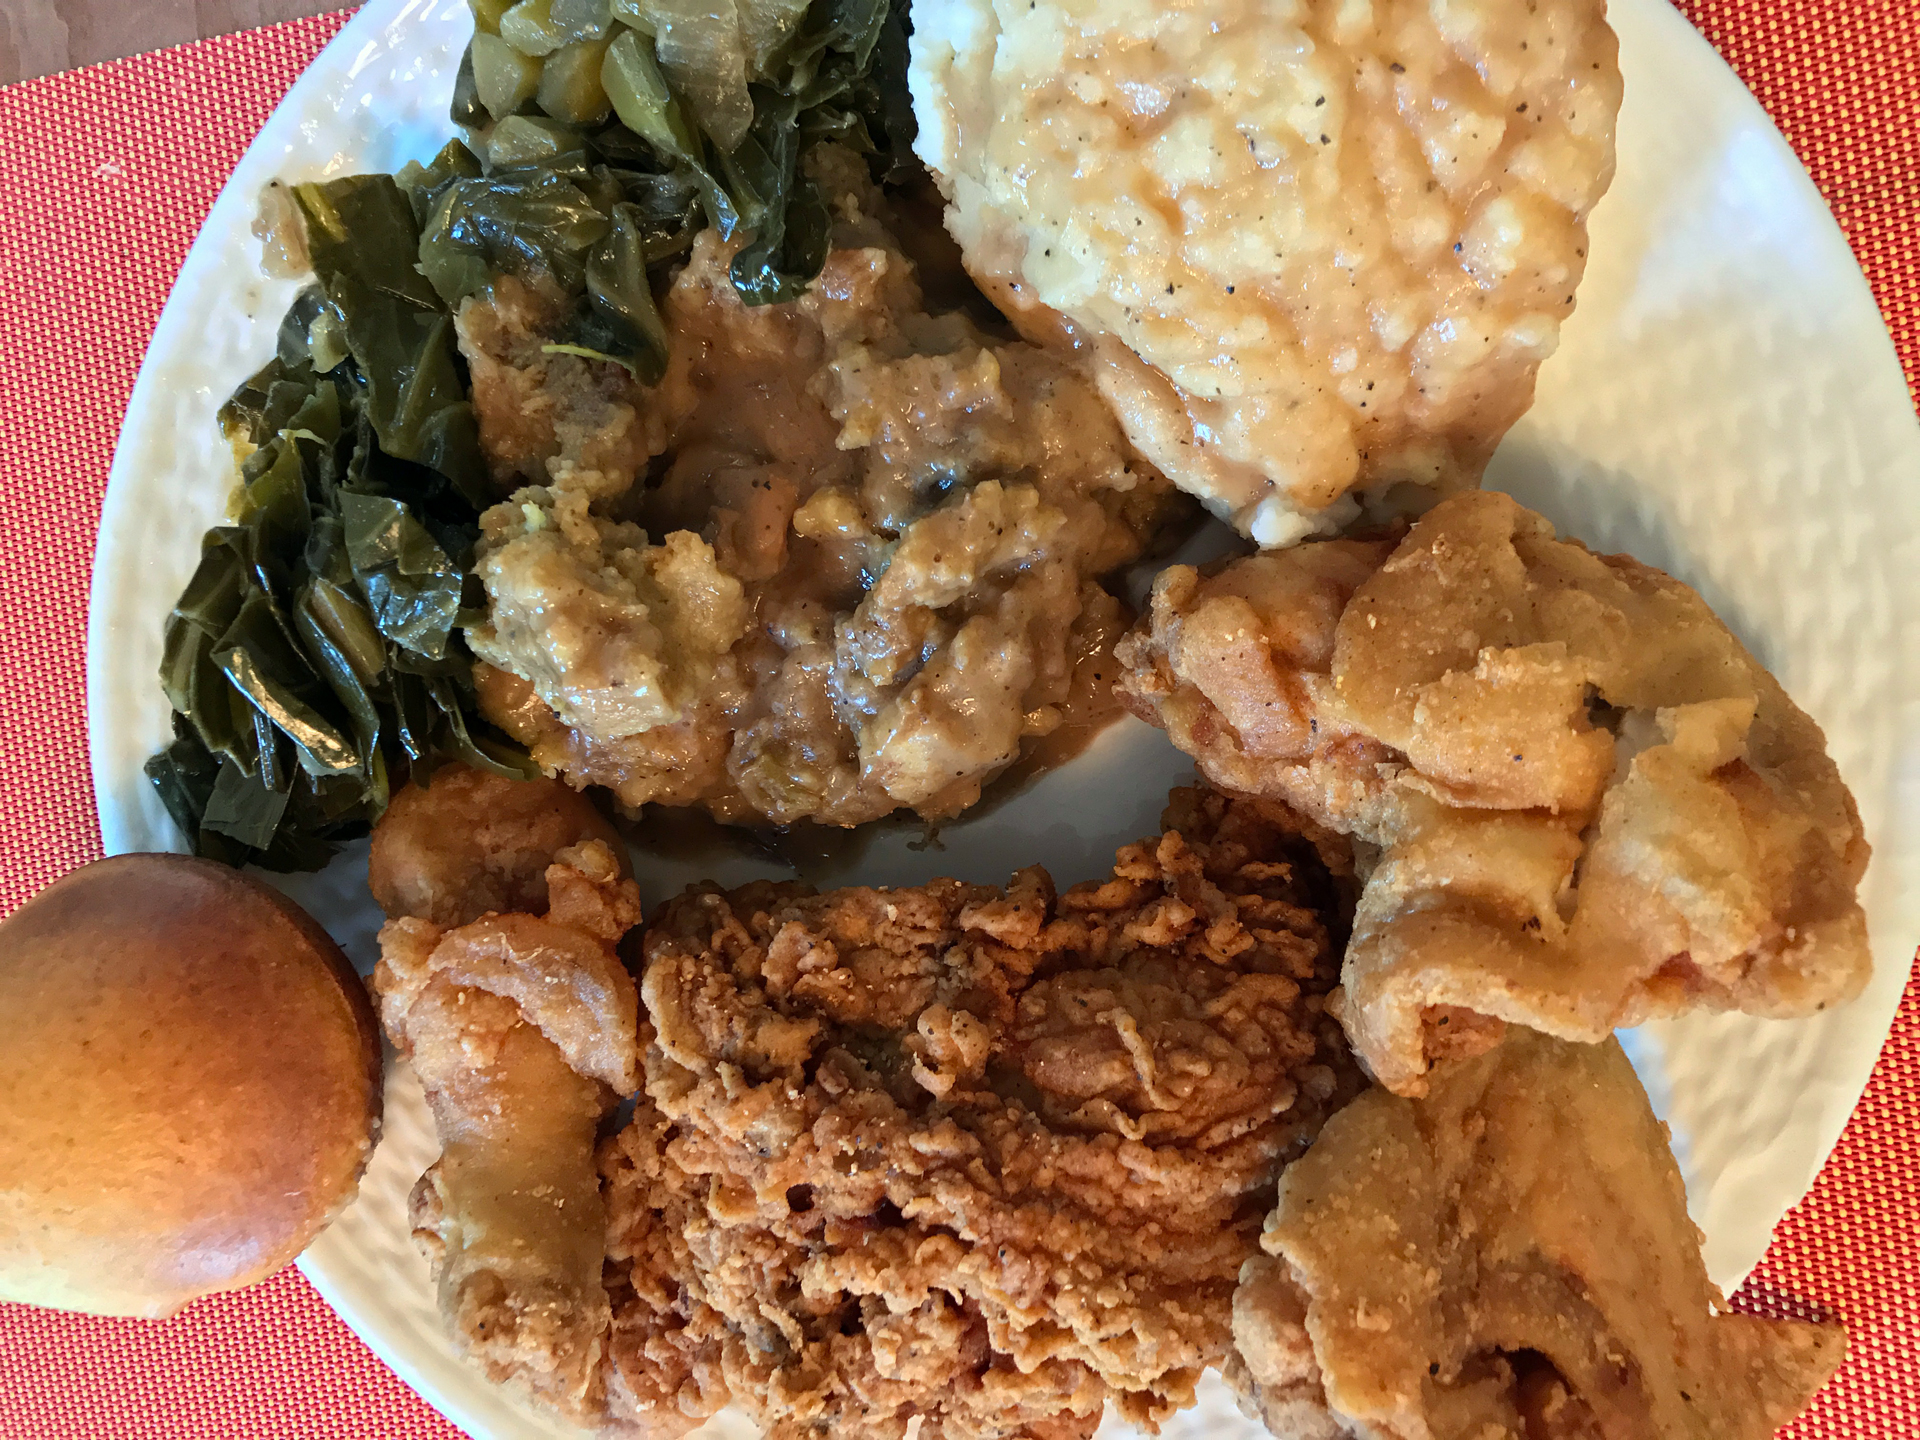 A heaping plate of fried chicken and fixins at Touch of Soul in Oakland.